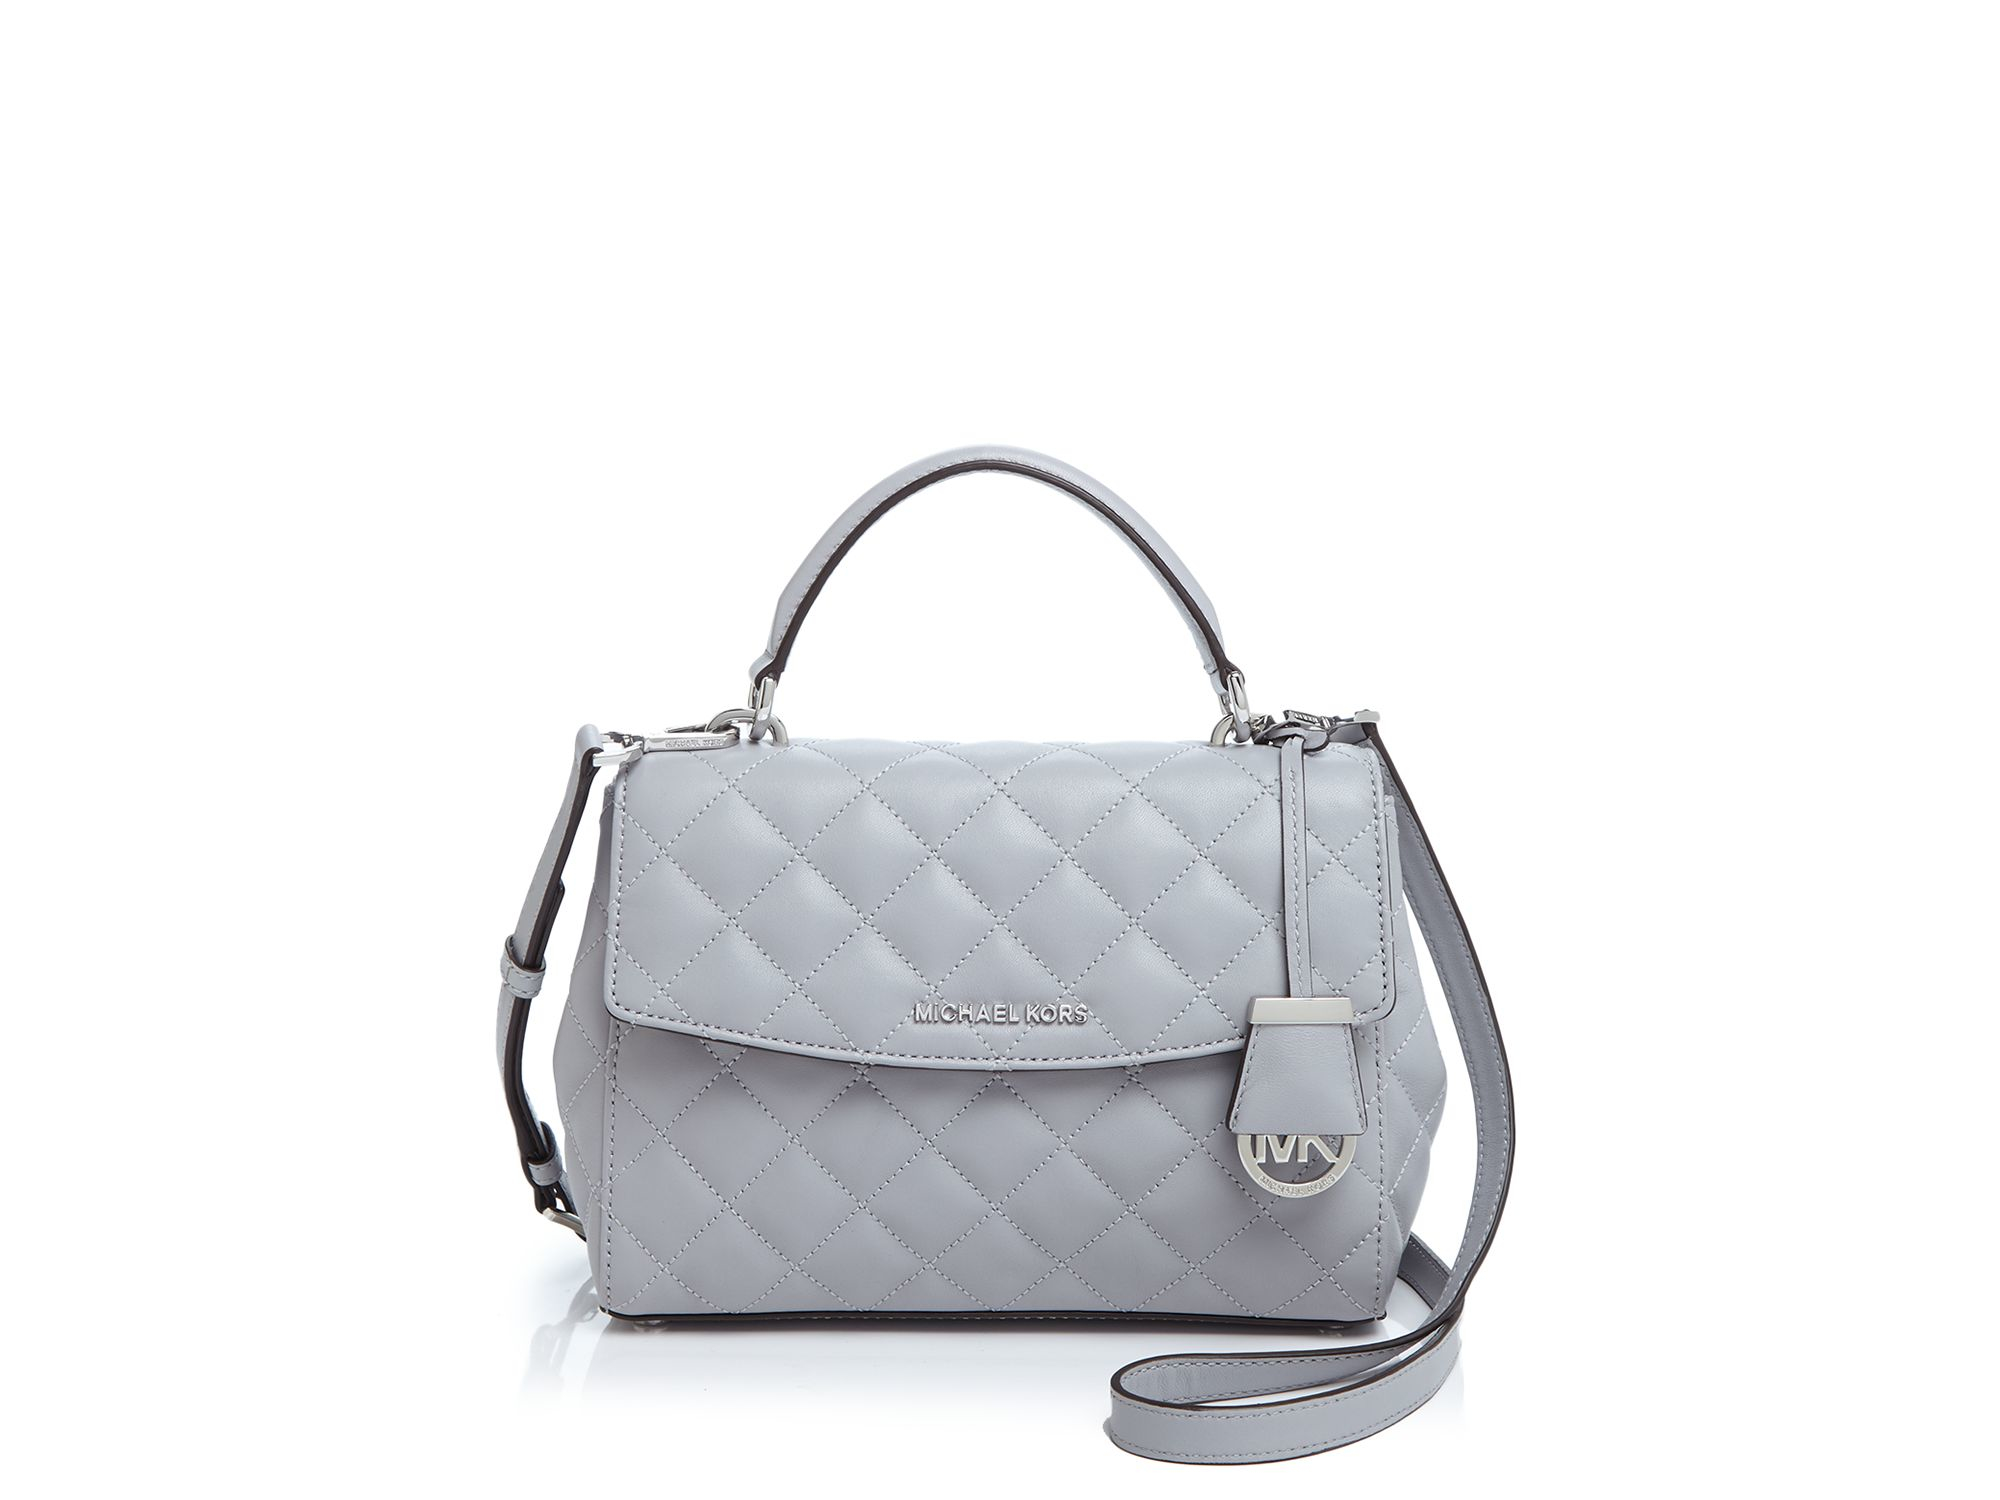 14db852ec0dd Gallery. Previously sold at: Bloomingdale's · Women's Michael Kors Quilted  Bag